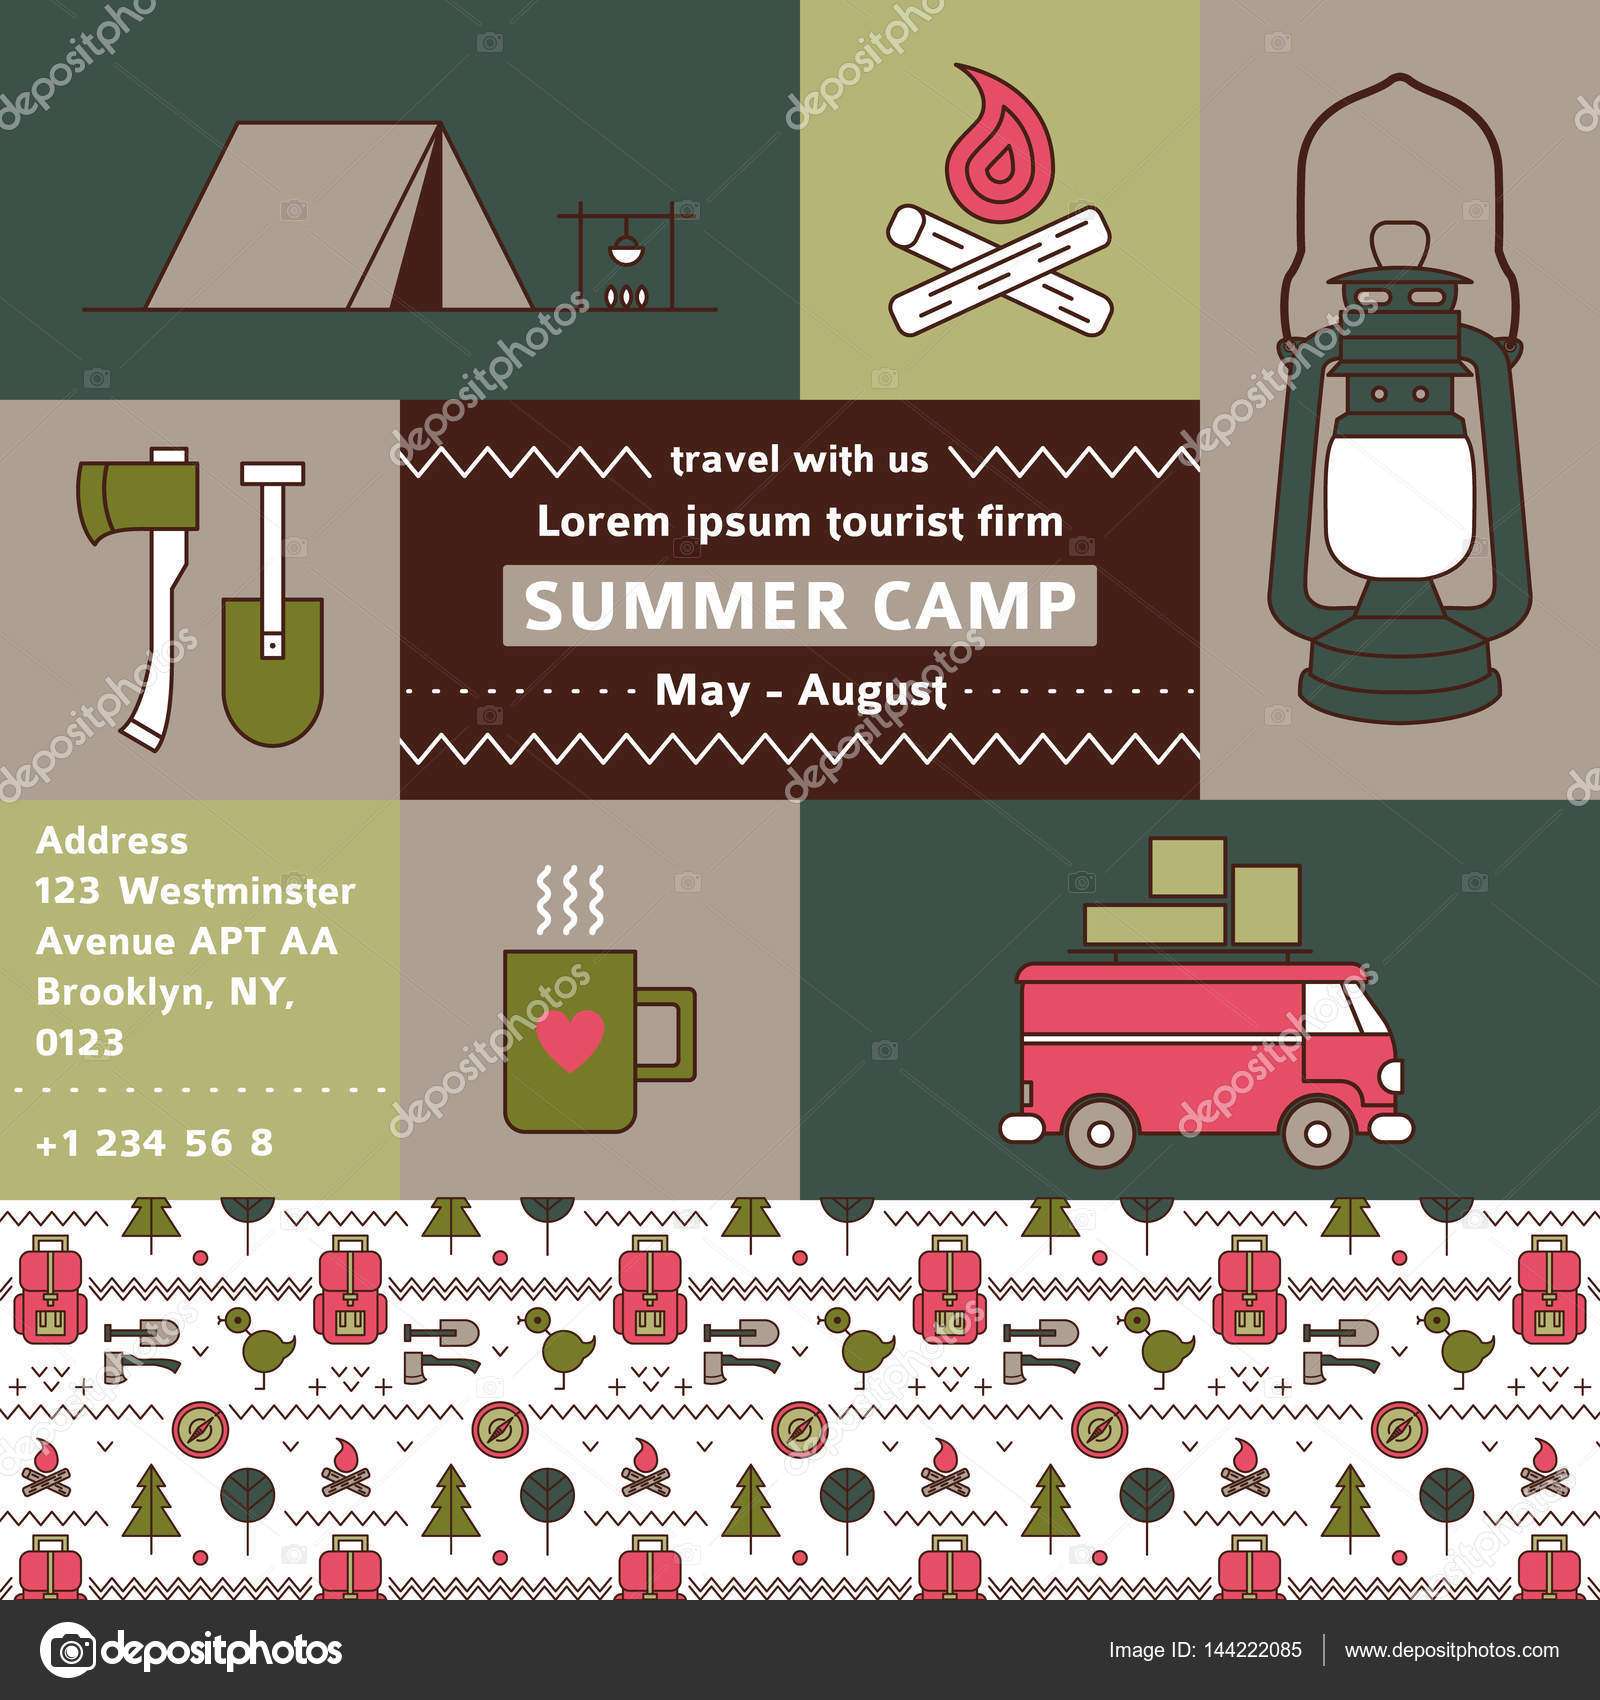 Tourist firm promotional poster. Summer camp